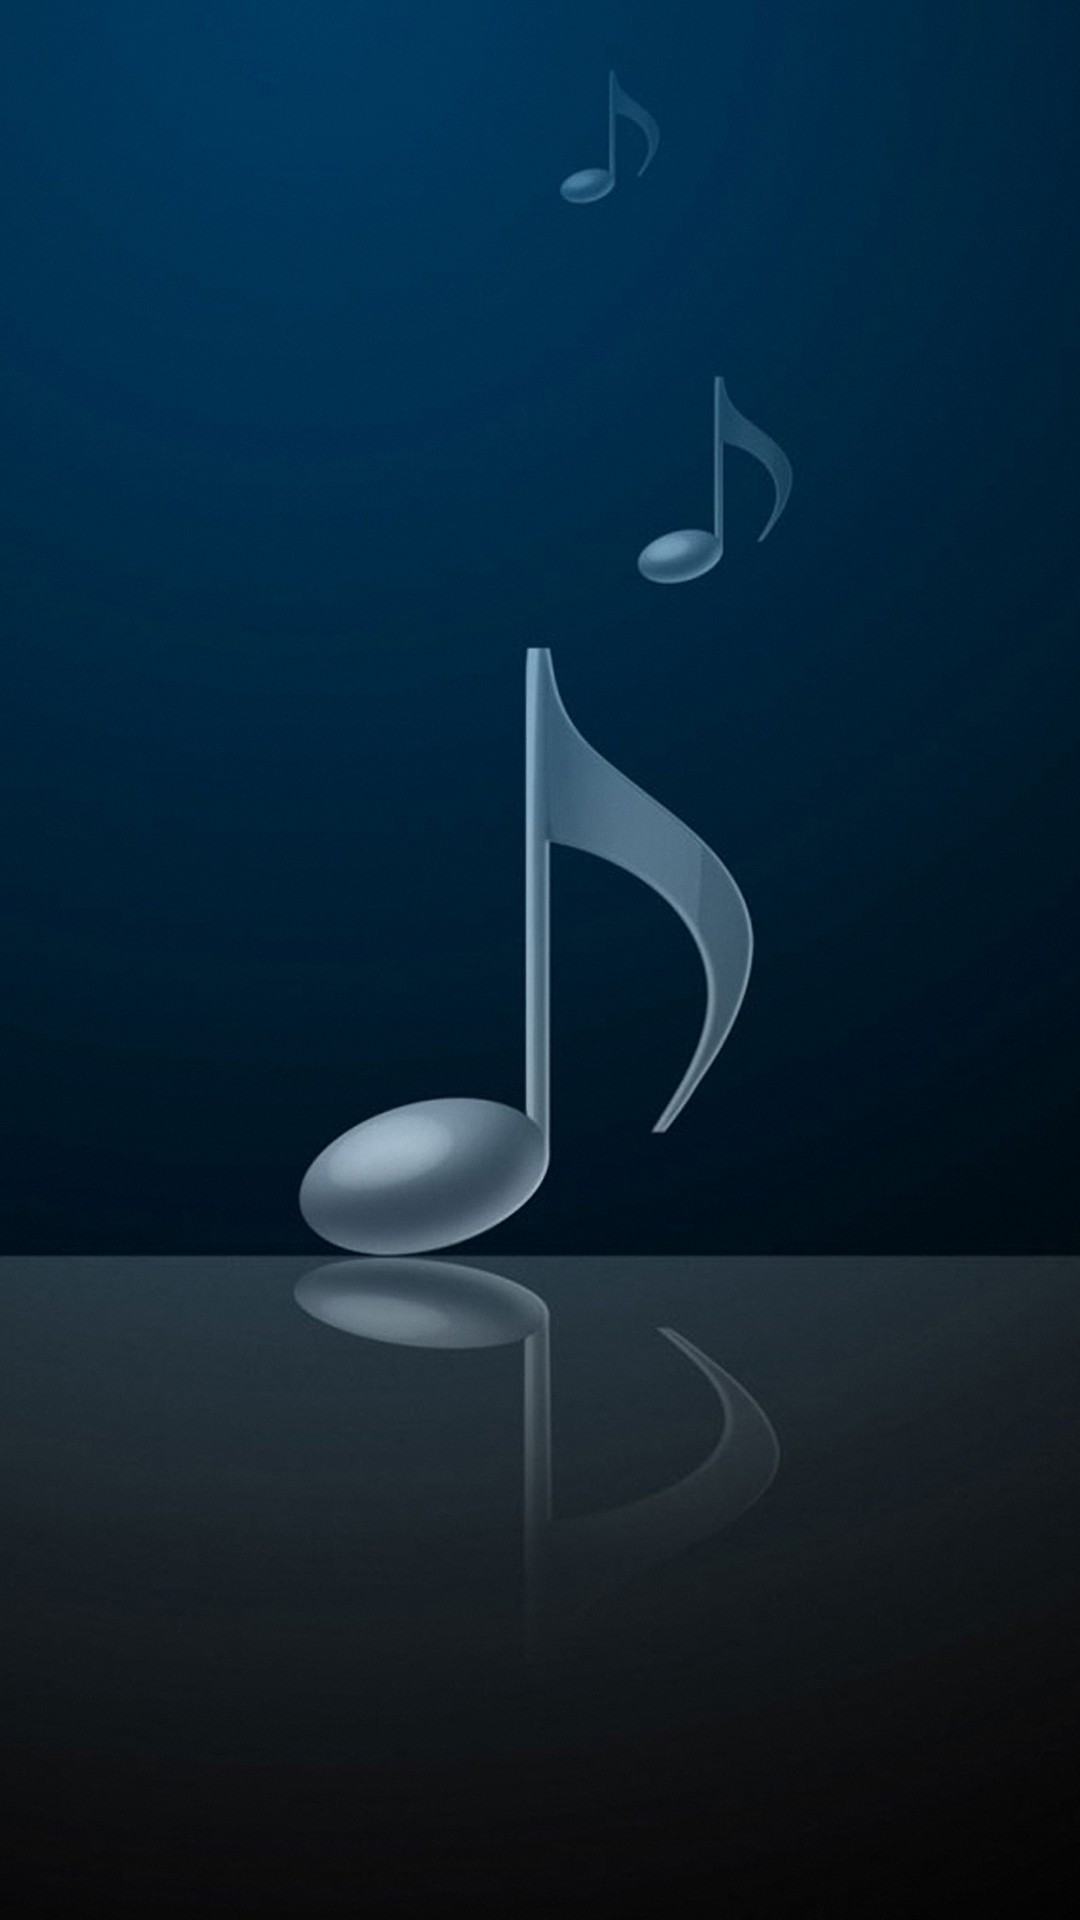 Beautiful Wallpaper Music Ios - 343611  Photograph_9104.jpg